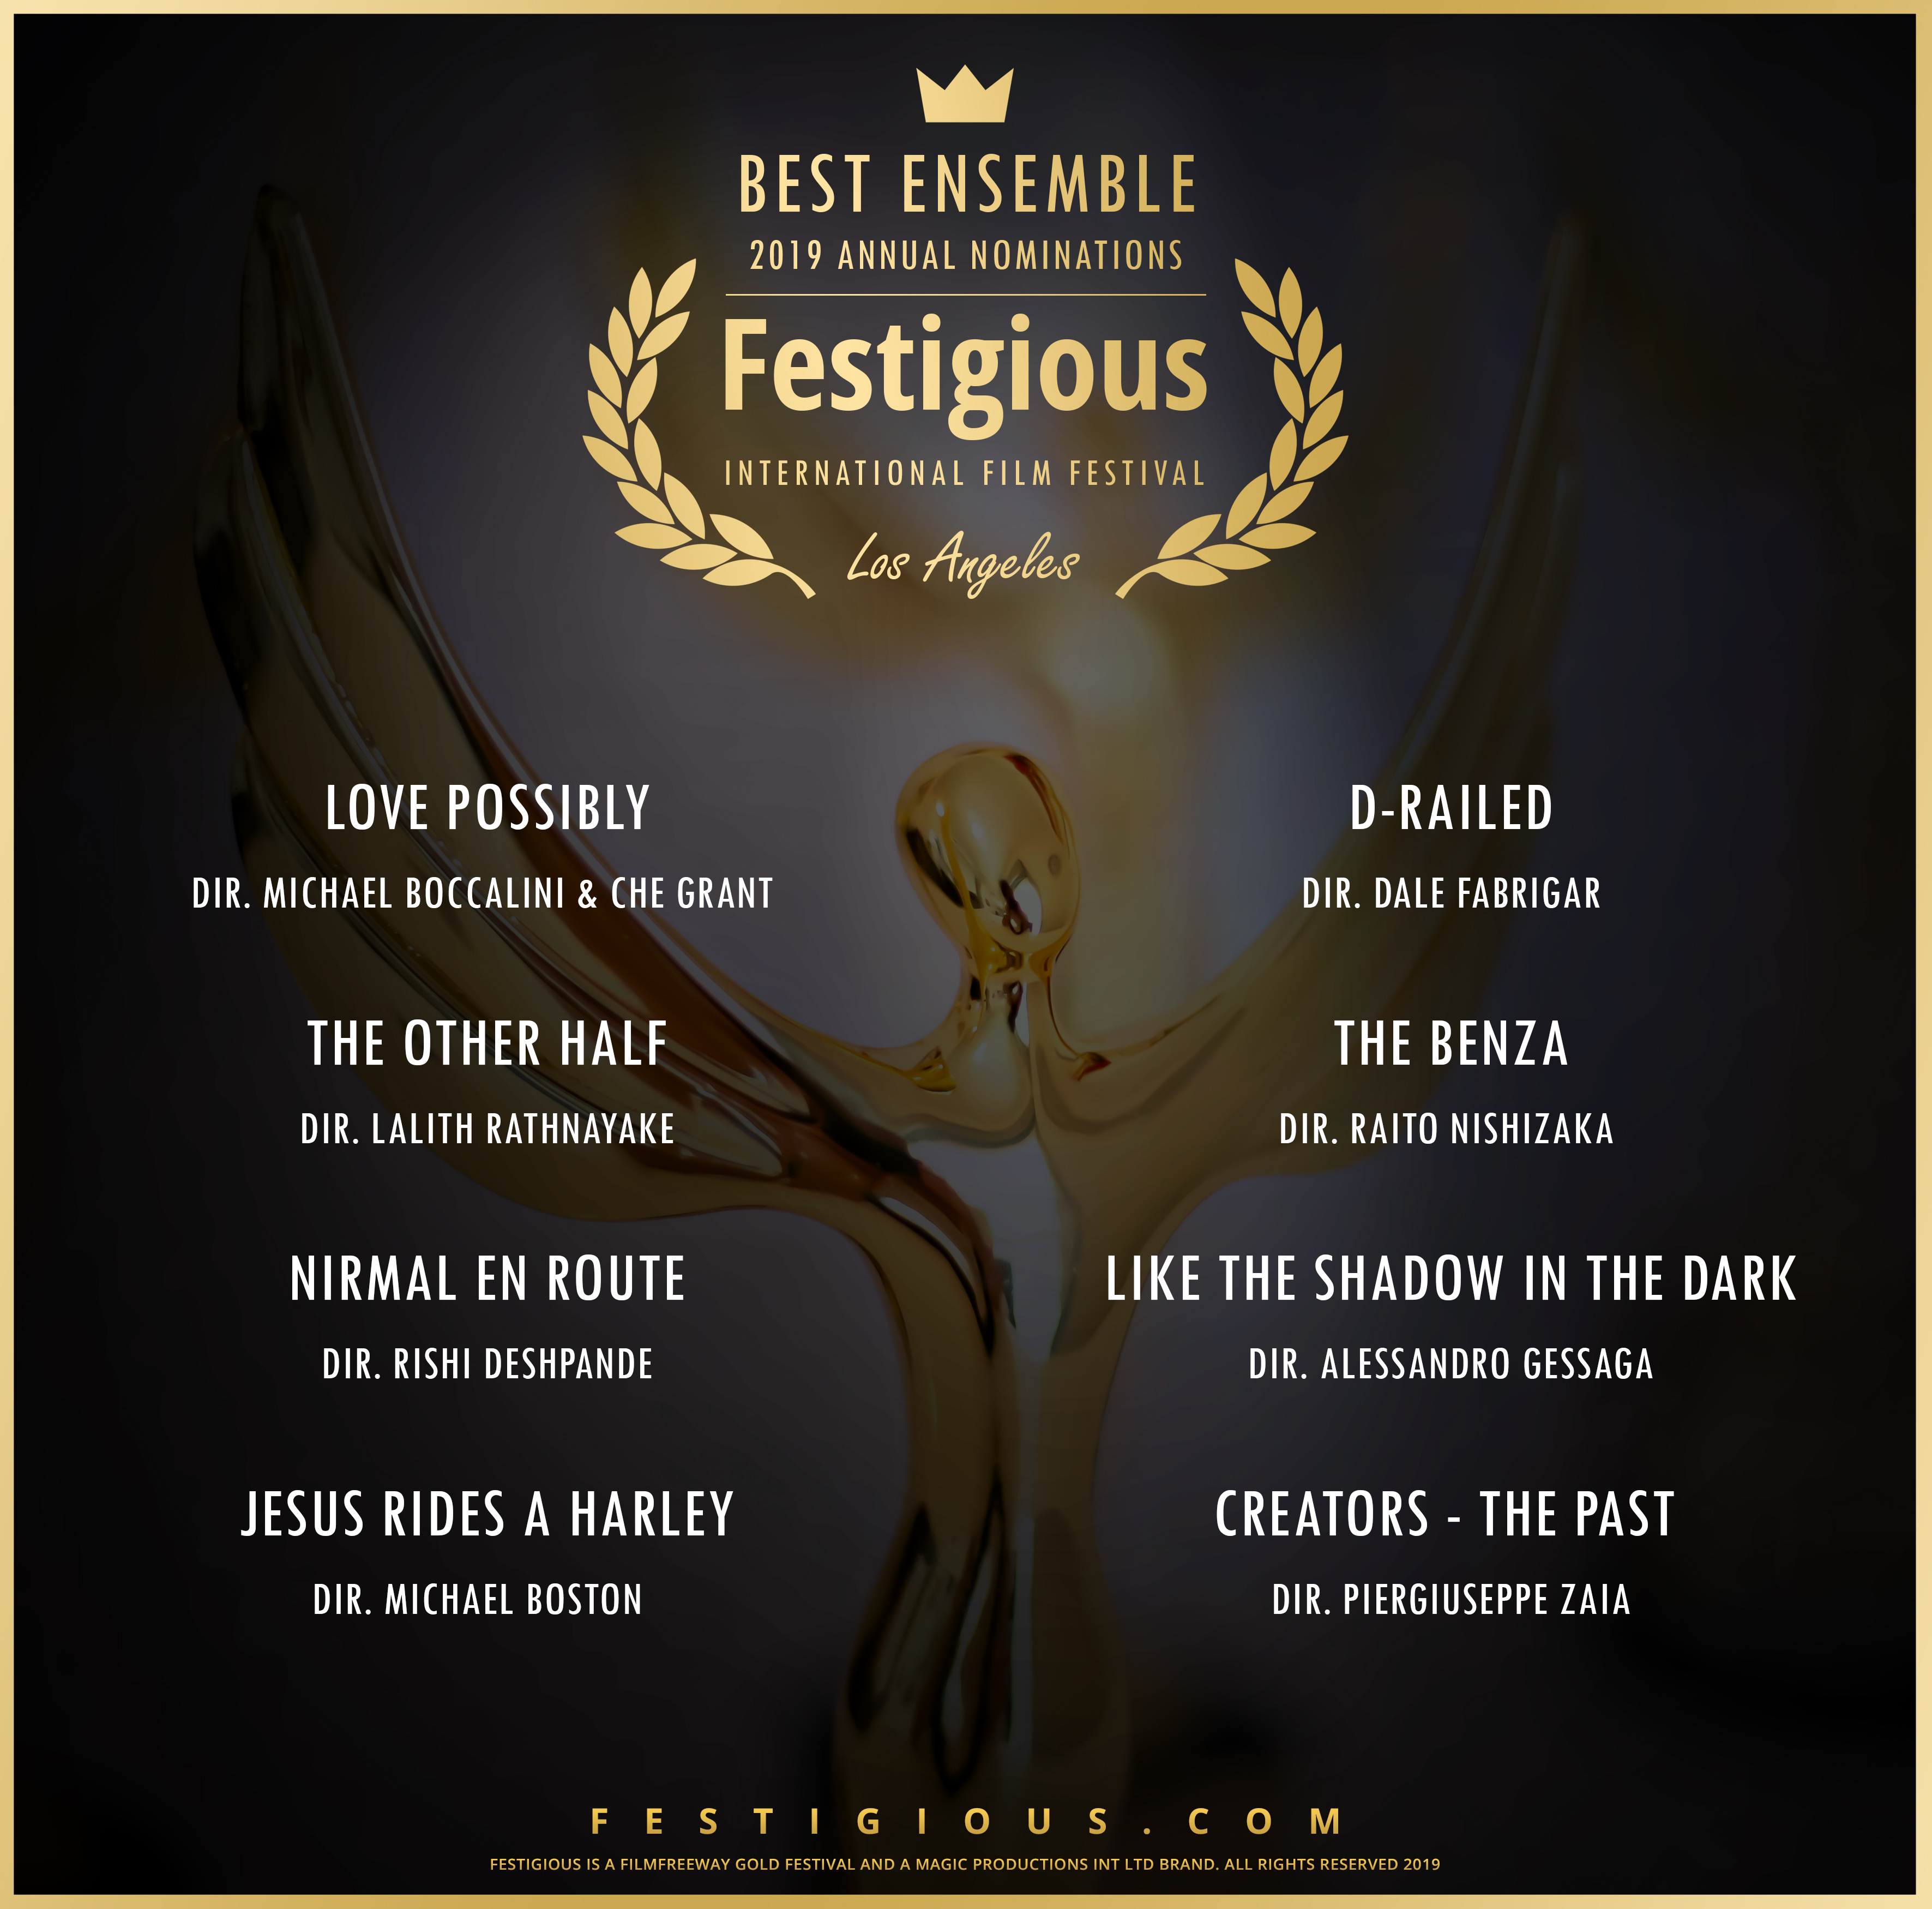 Festigious Best Ensemble